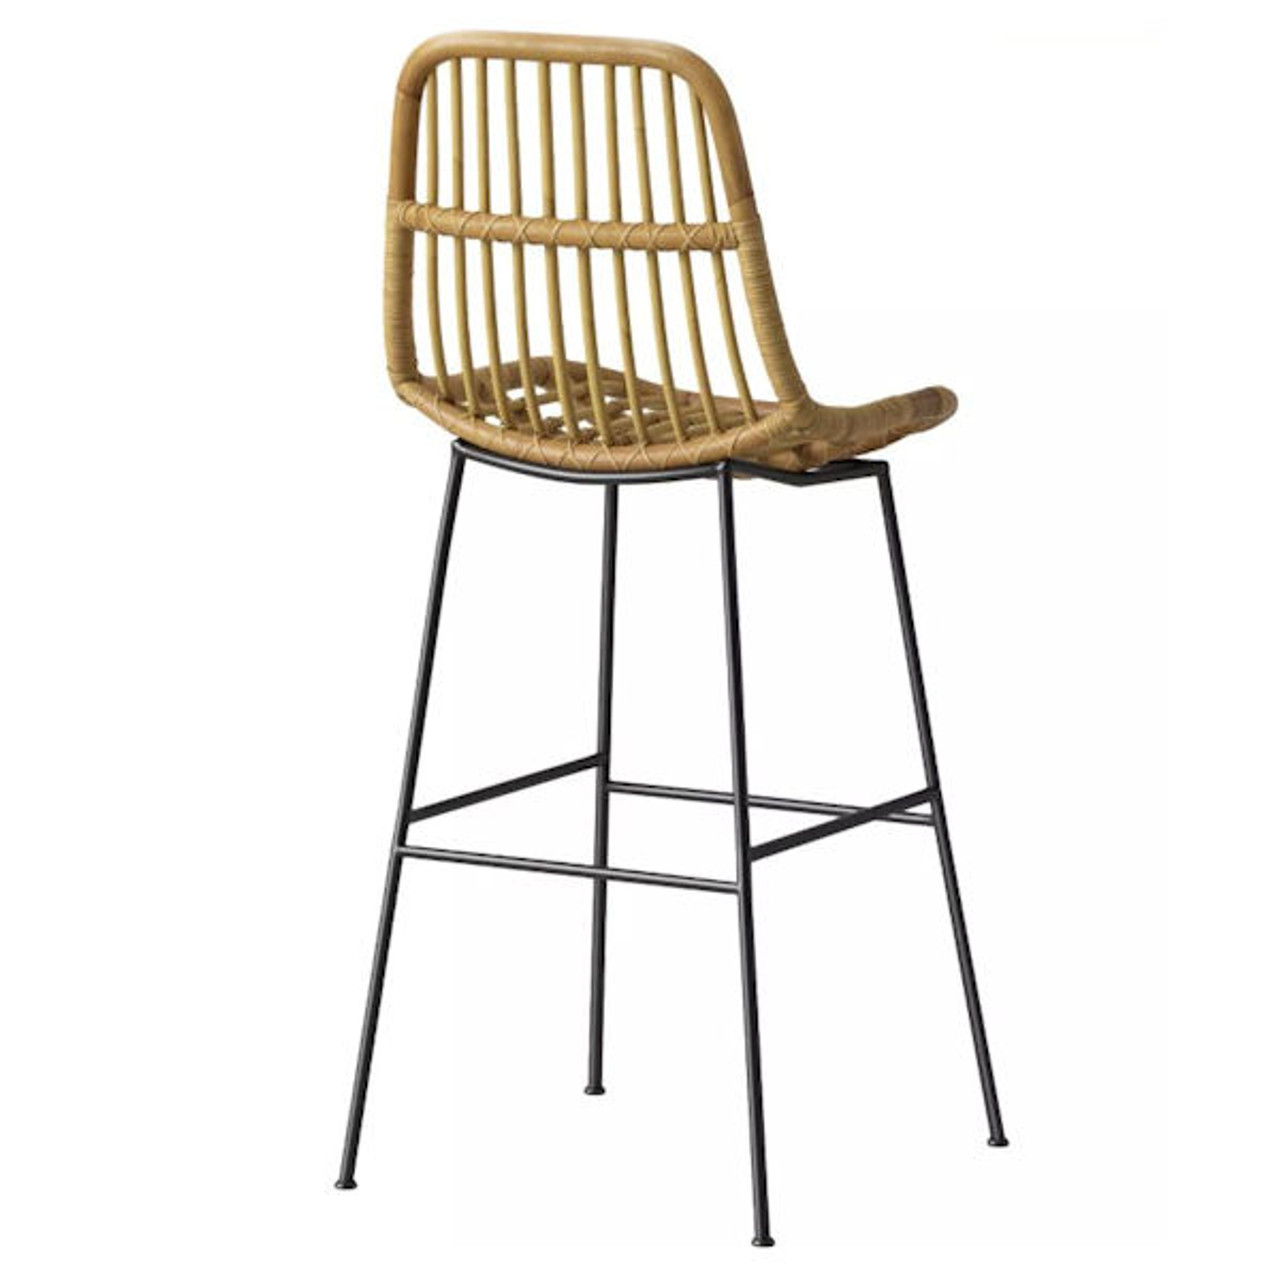 Linnet Rattan with Metal Legs Barstool Light Brown